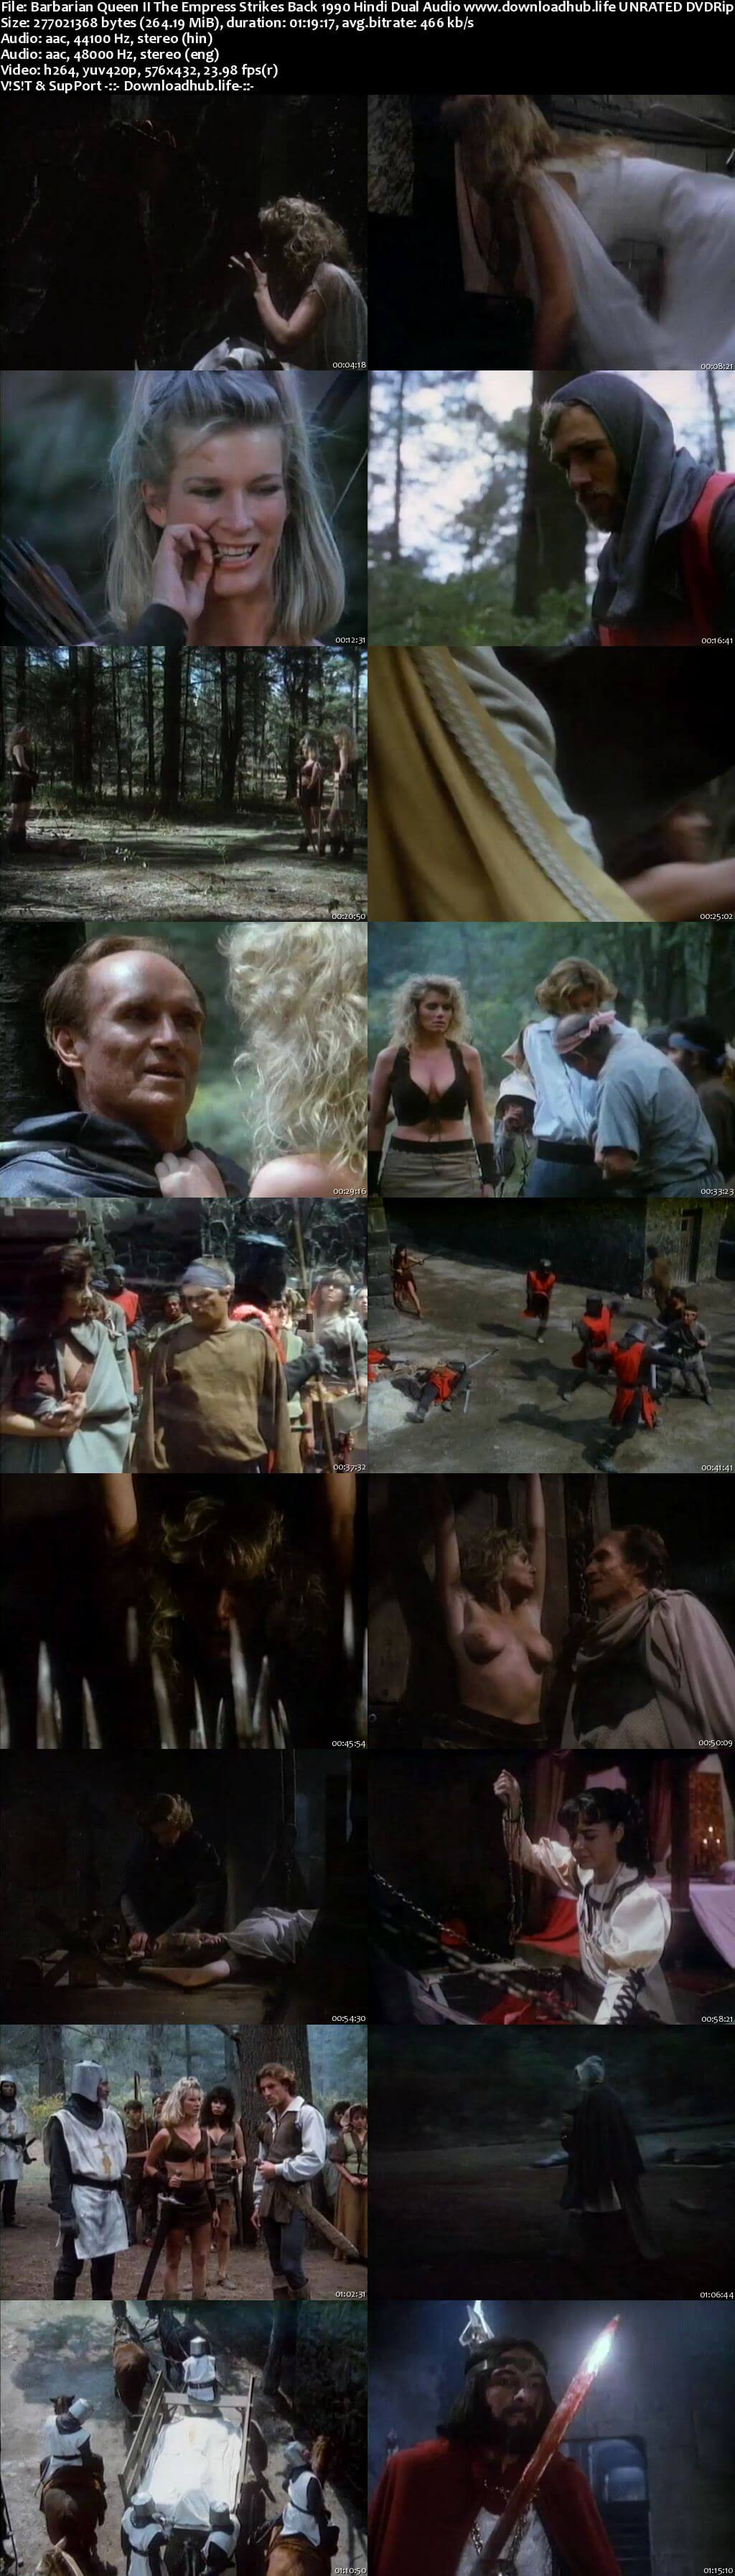 Barbarian Queen II The Empress Strikes Back 1990 Hindi Dual Audio 250MB UNRATED DVDRip 480p